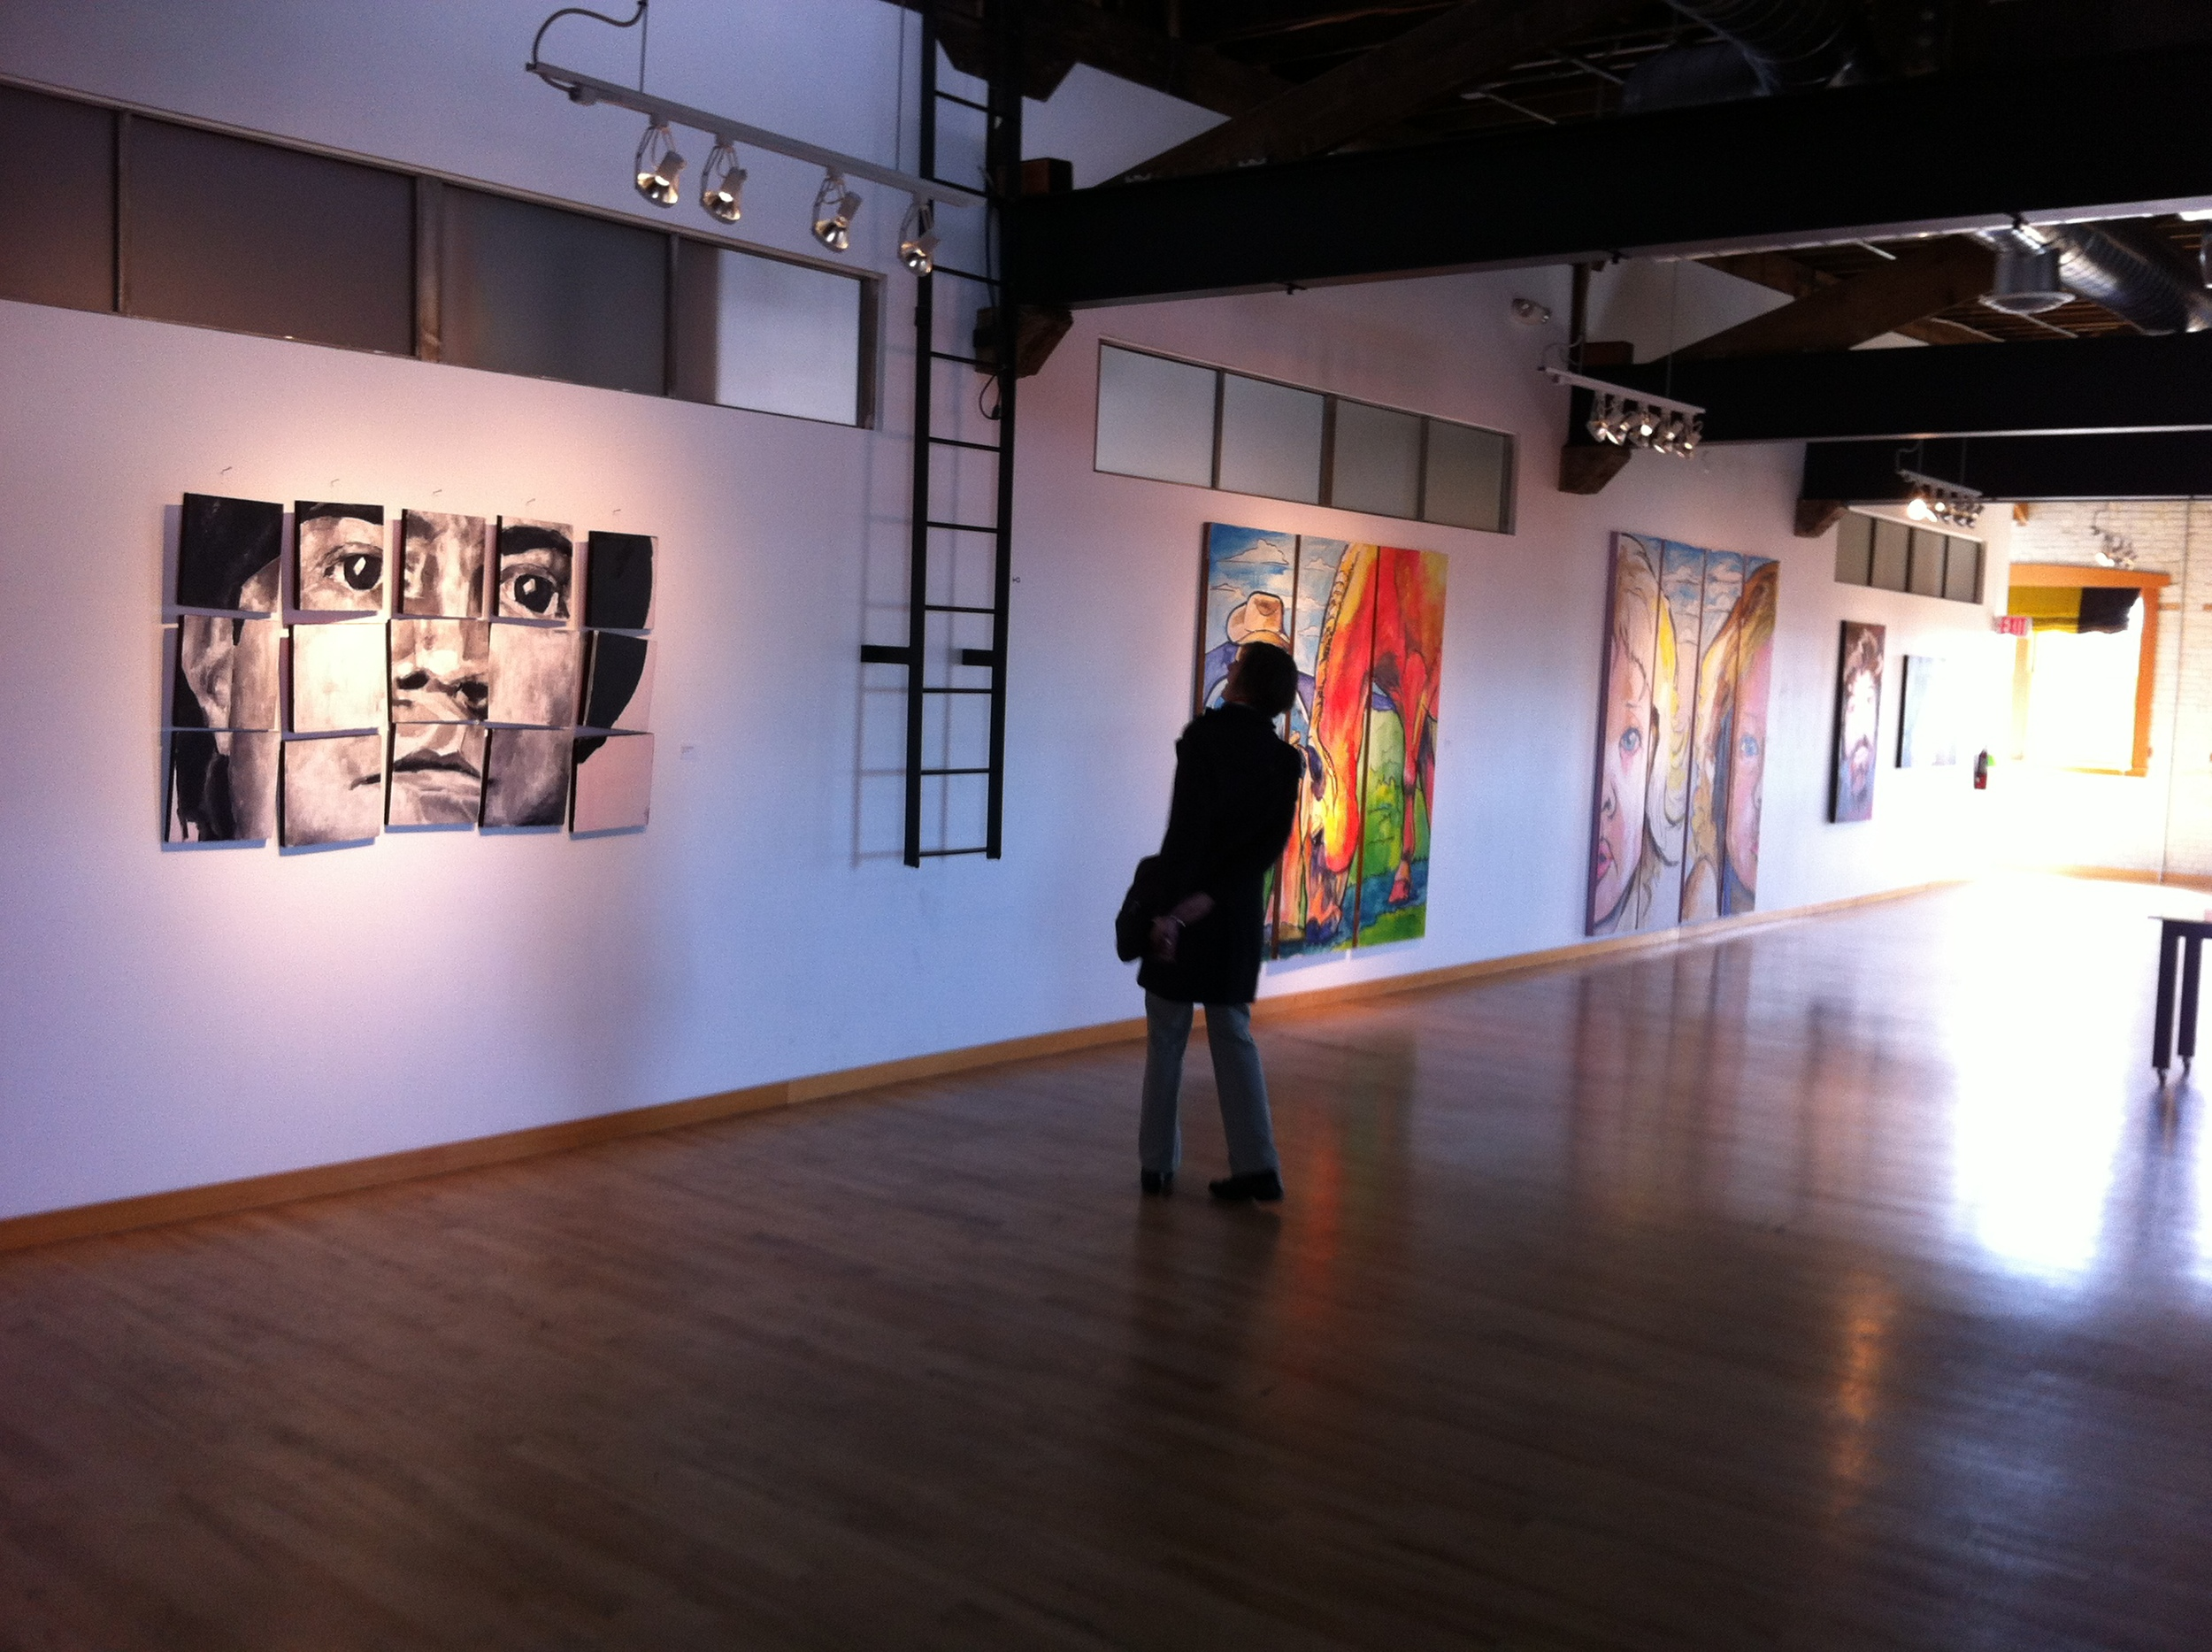 Found this second story art gallery in the Linen Building...a great surprise.